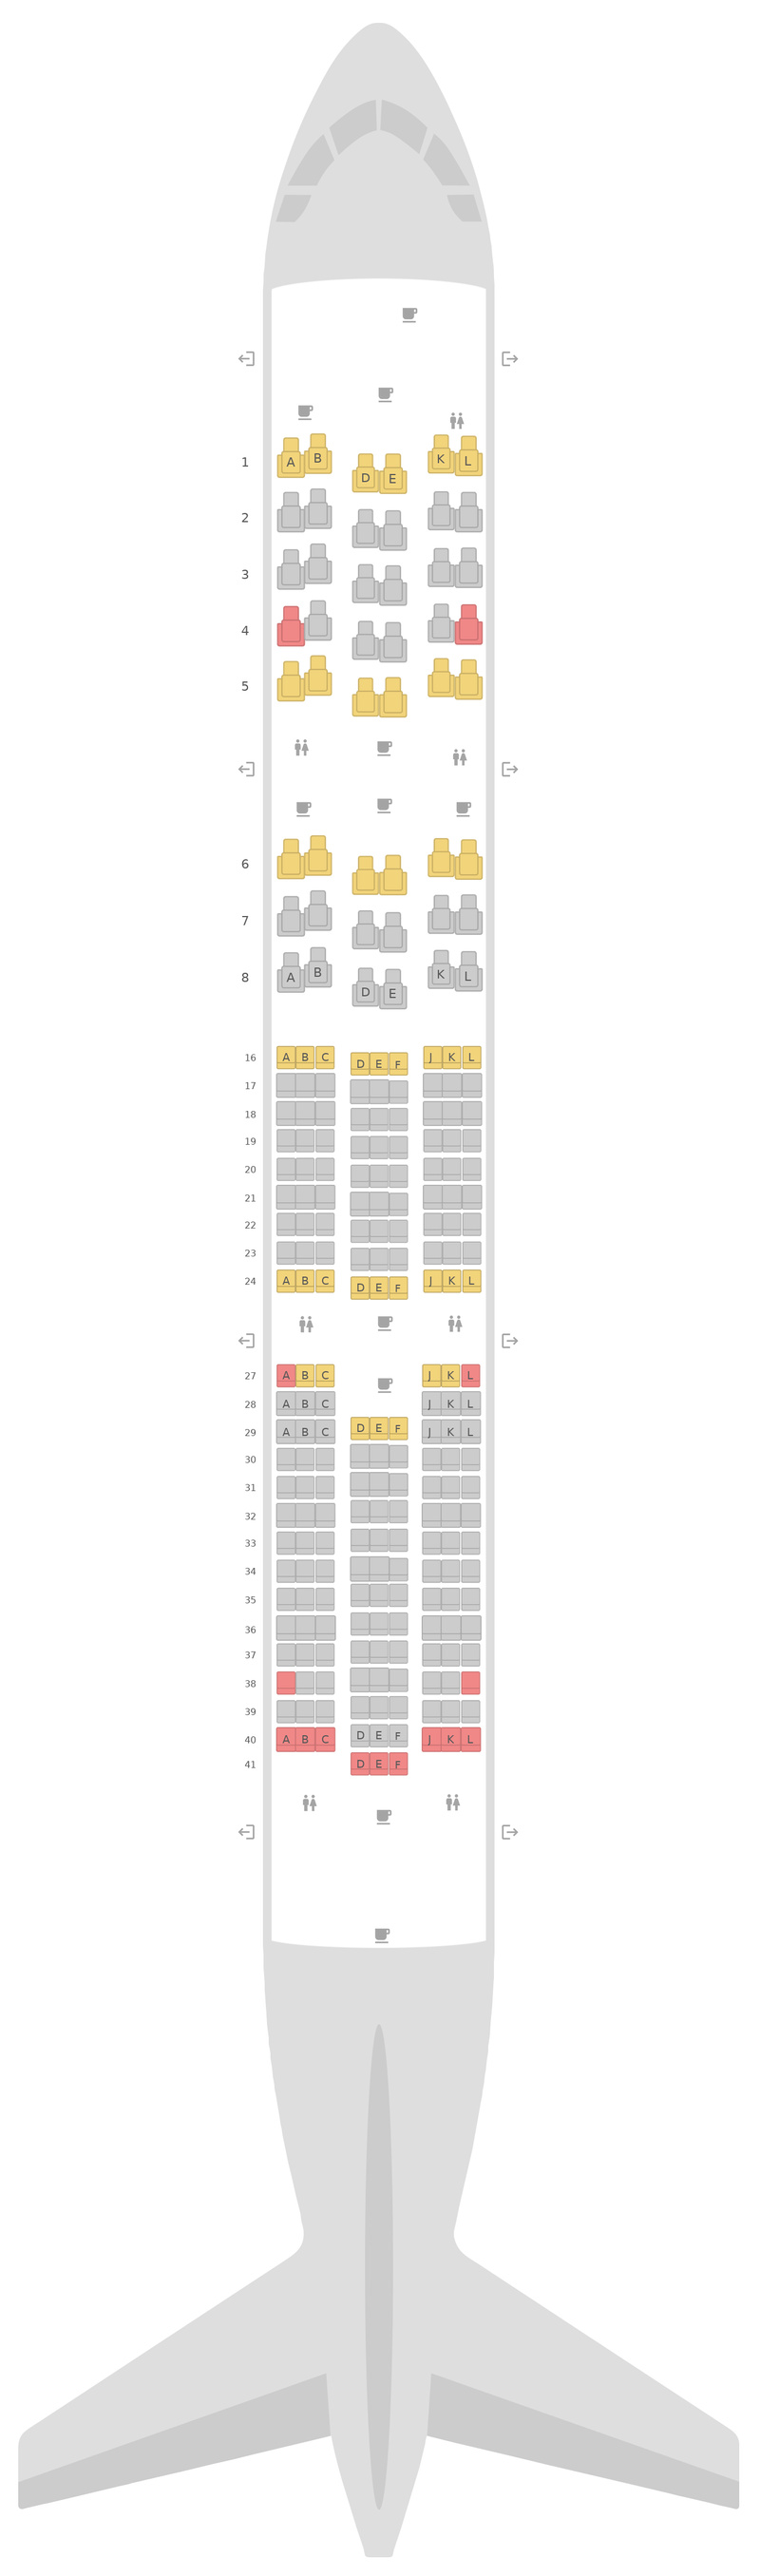 Seat Map United Boeing 787-9 (789)